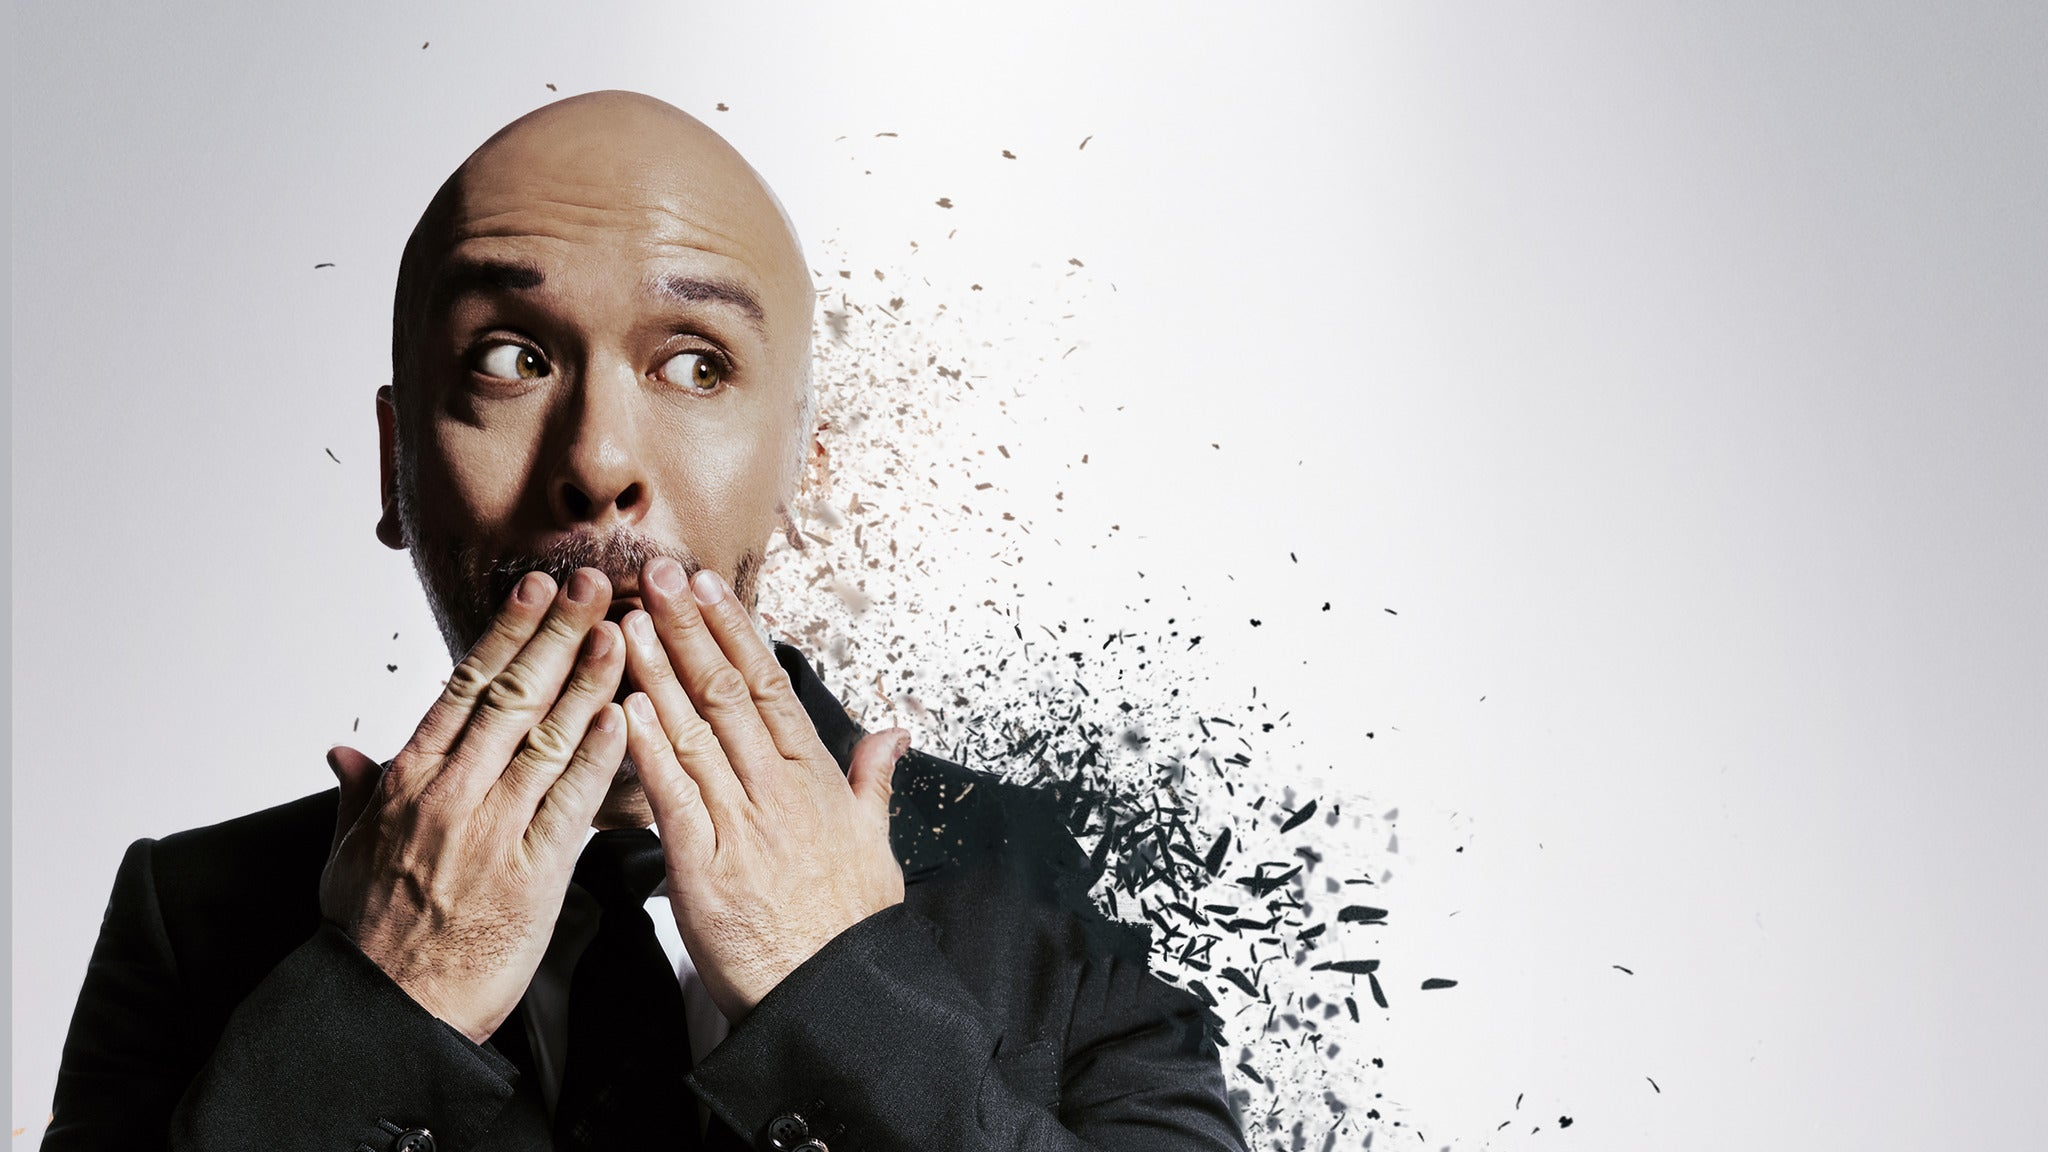 SORRY, THIS EVENT IS NO LONGER ACTIVE<br>Jo Koy at San Jose Improv - San Jose, CA 95113